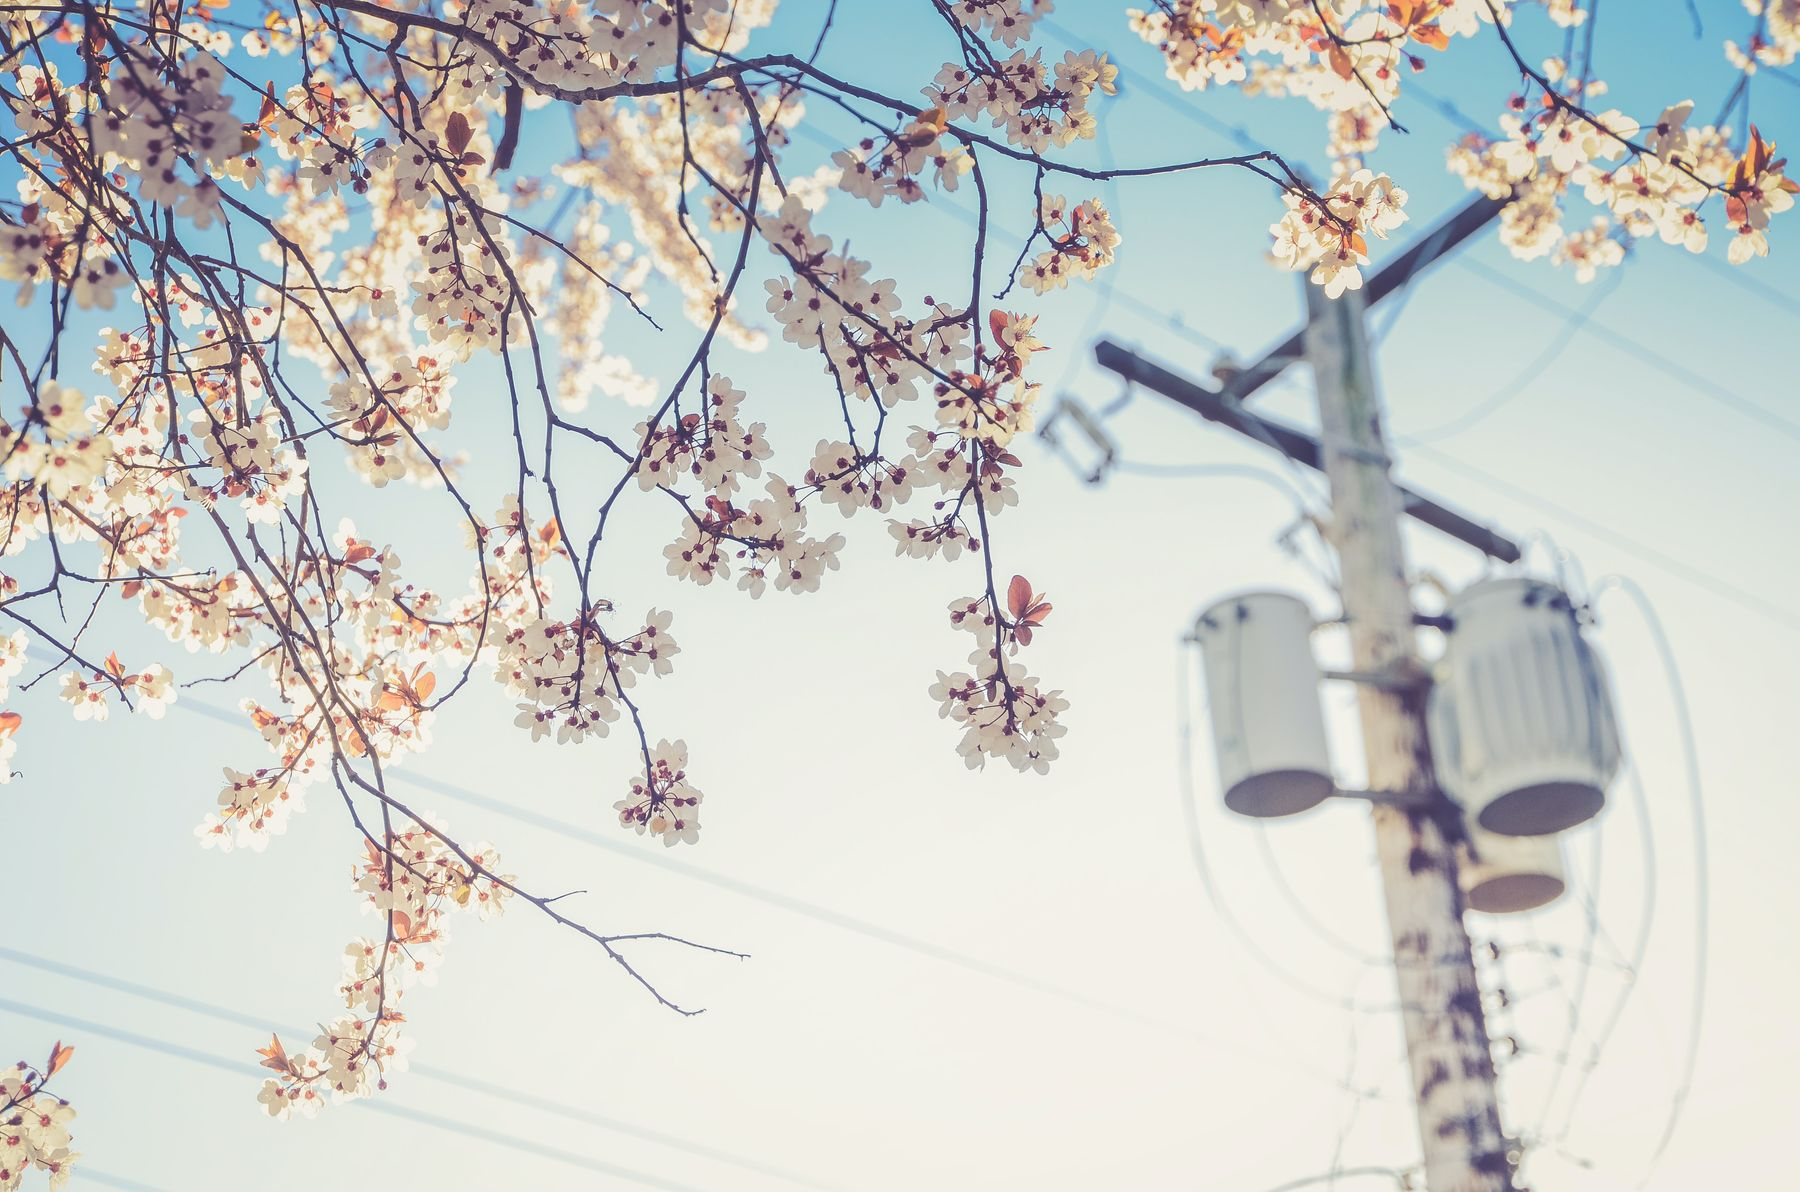 view of cherry blossoms and a street pole in Vancouver. chasing cherry blossoms is one of the best outdoor activities in Vancouver in spring